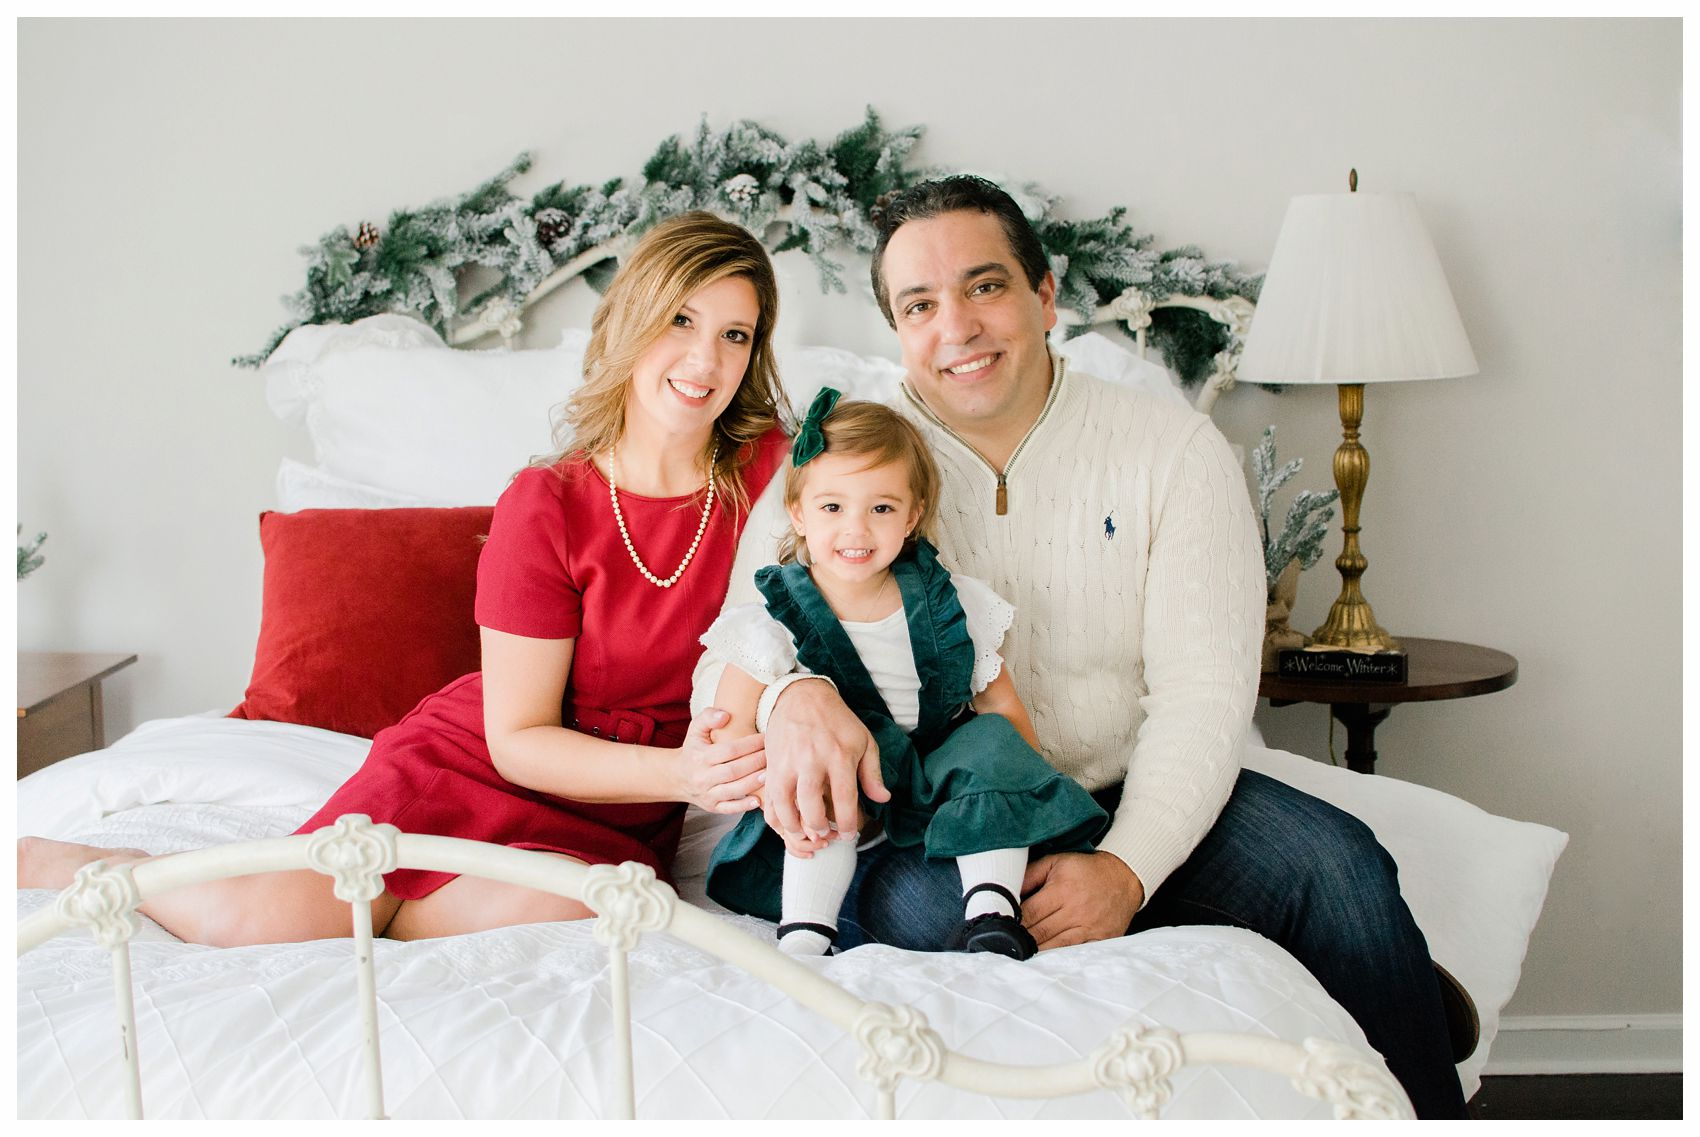 family holiday photo shoot at NJ home on the bed with mom dad and little girl